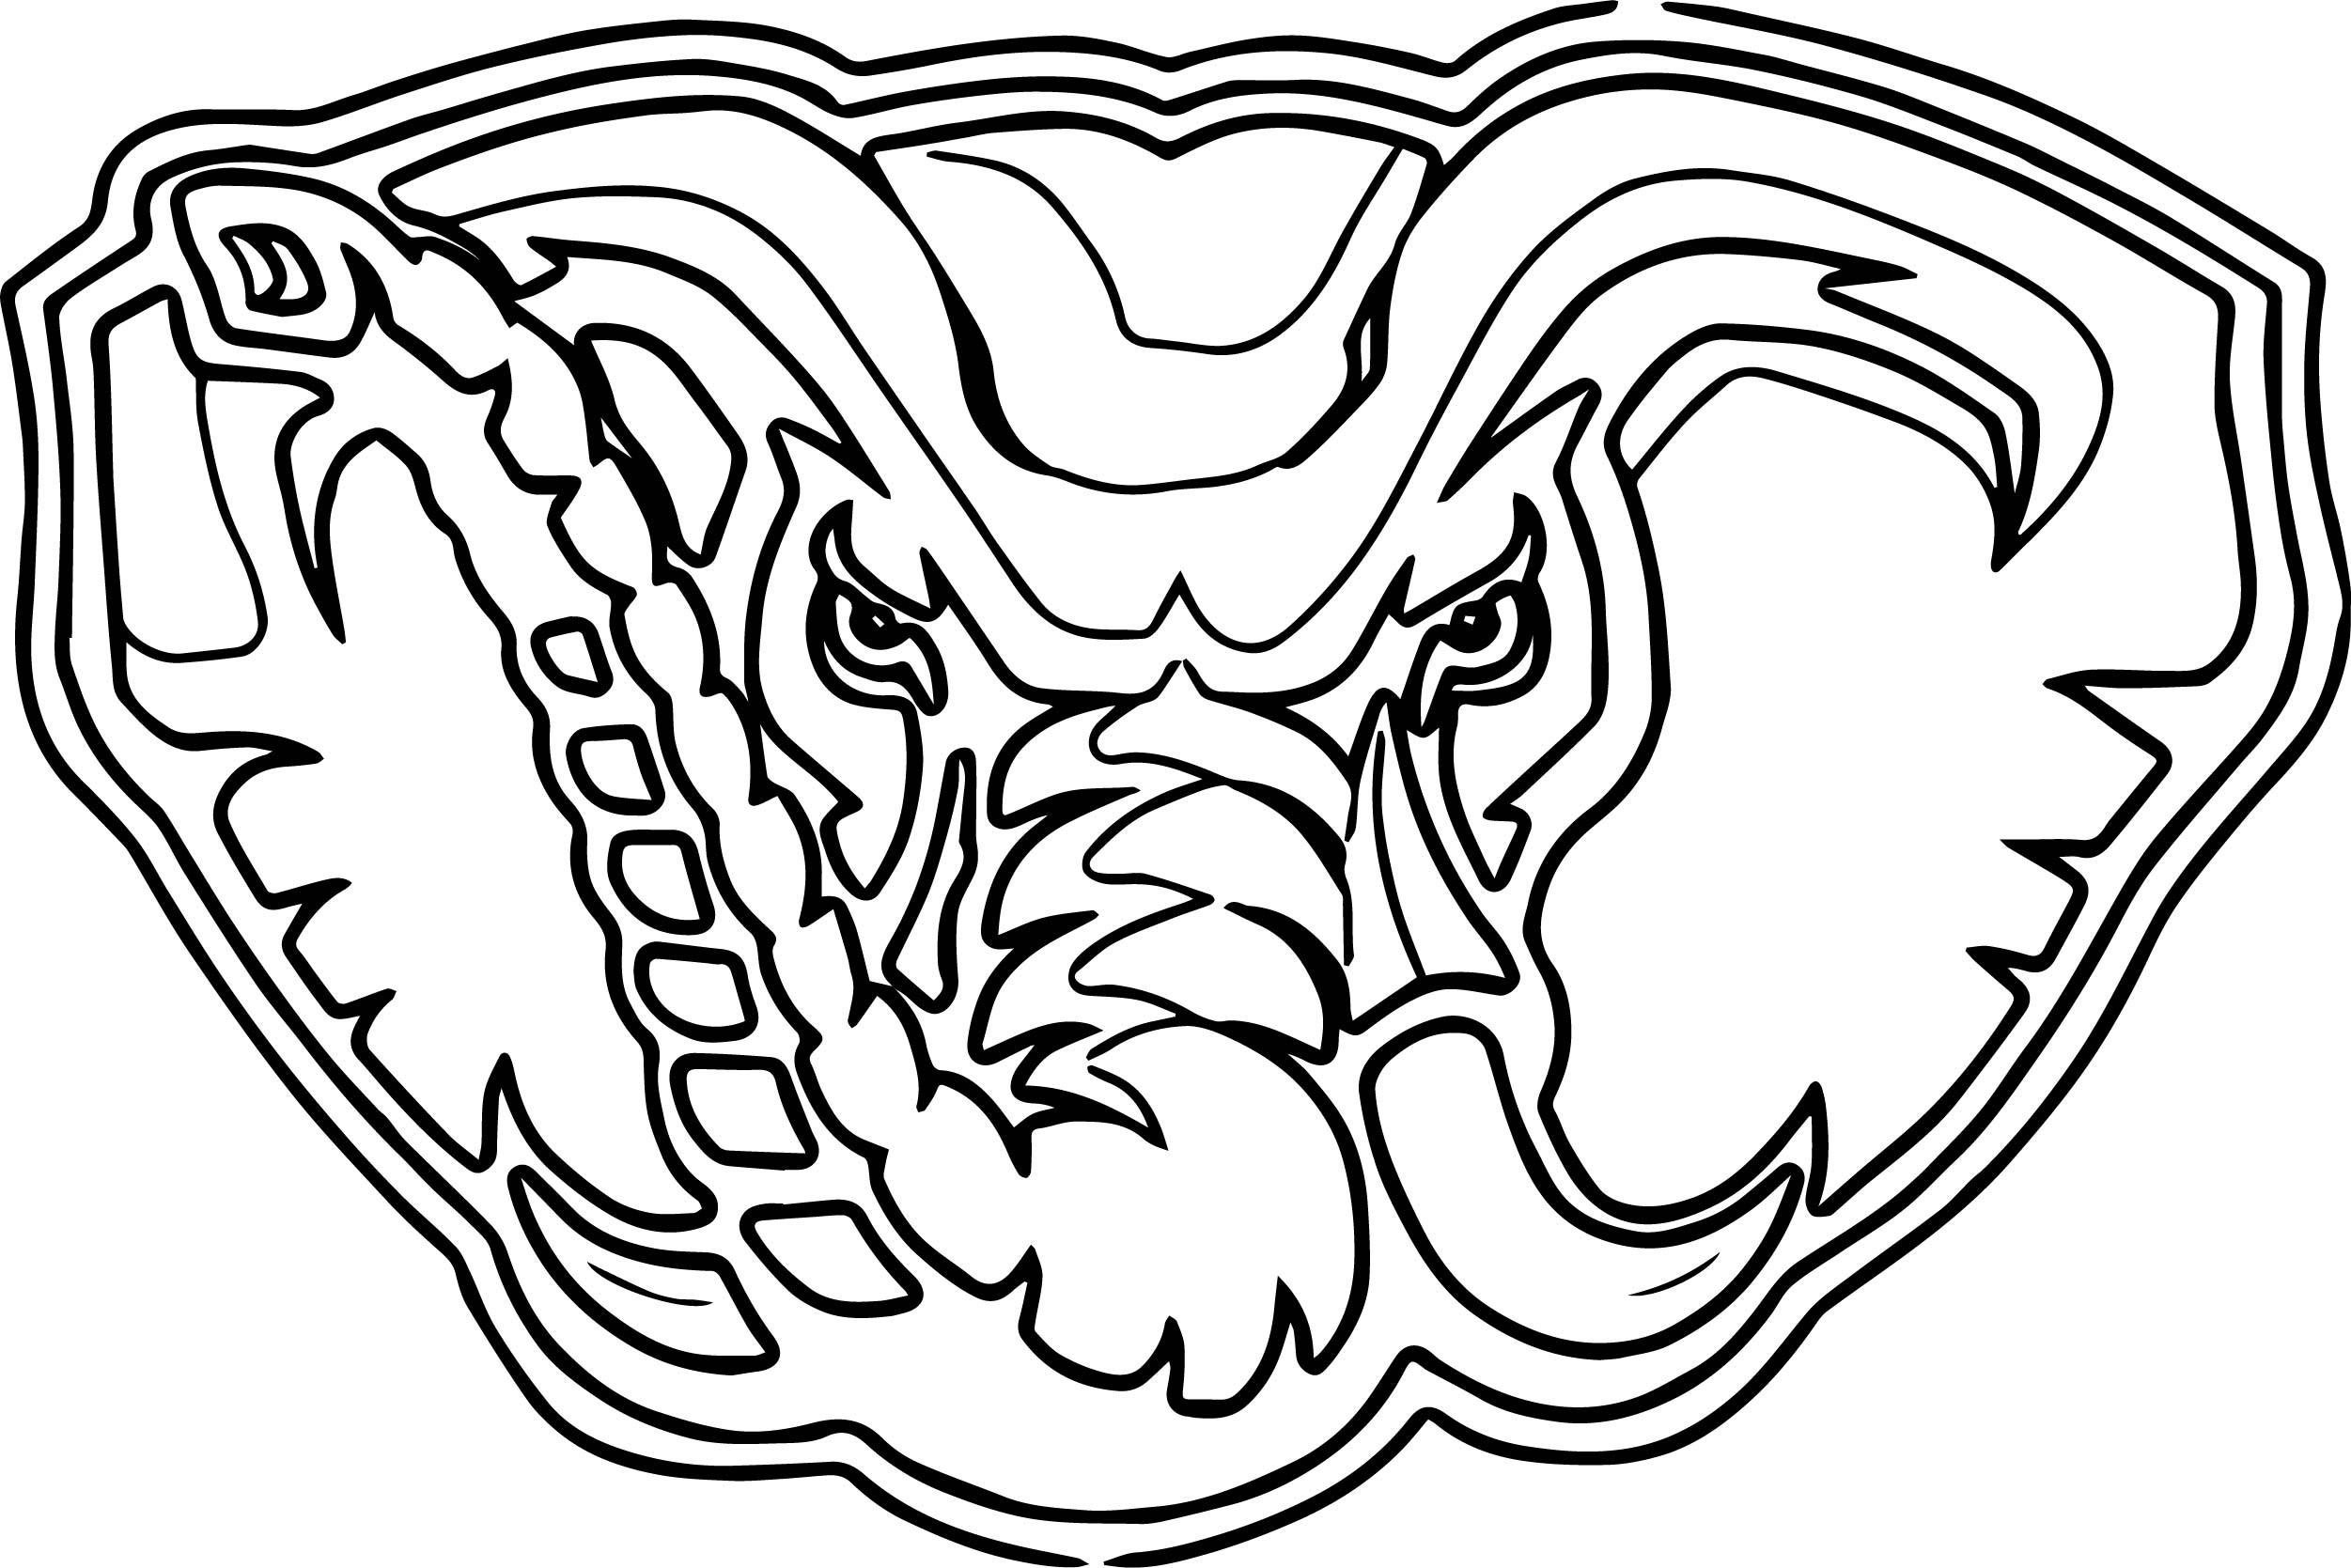 Alabama Elephant Face Outline Coloring